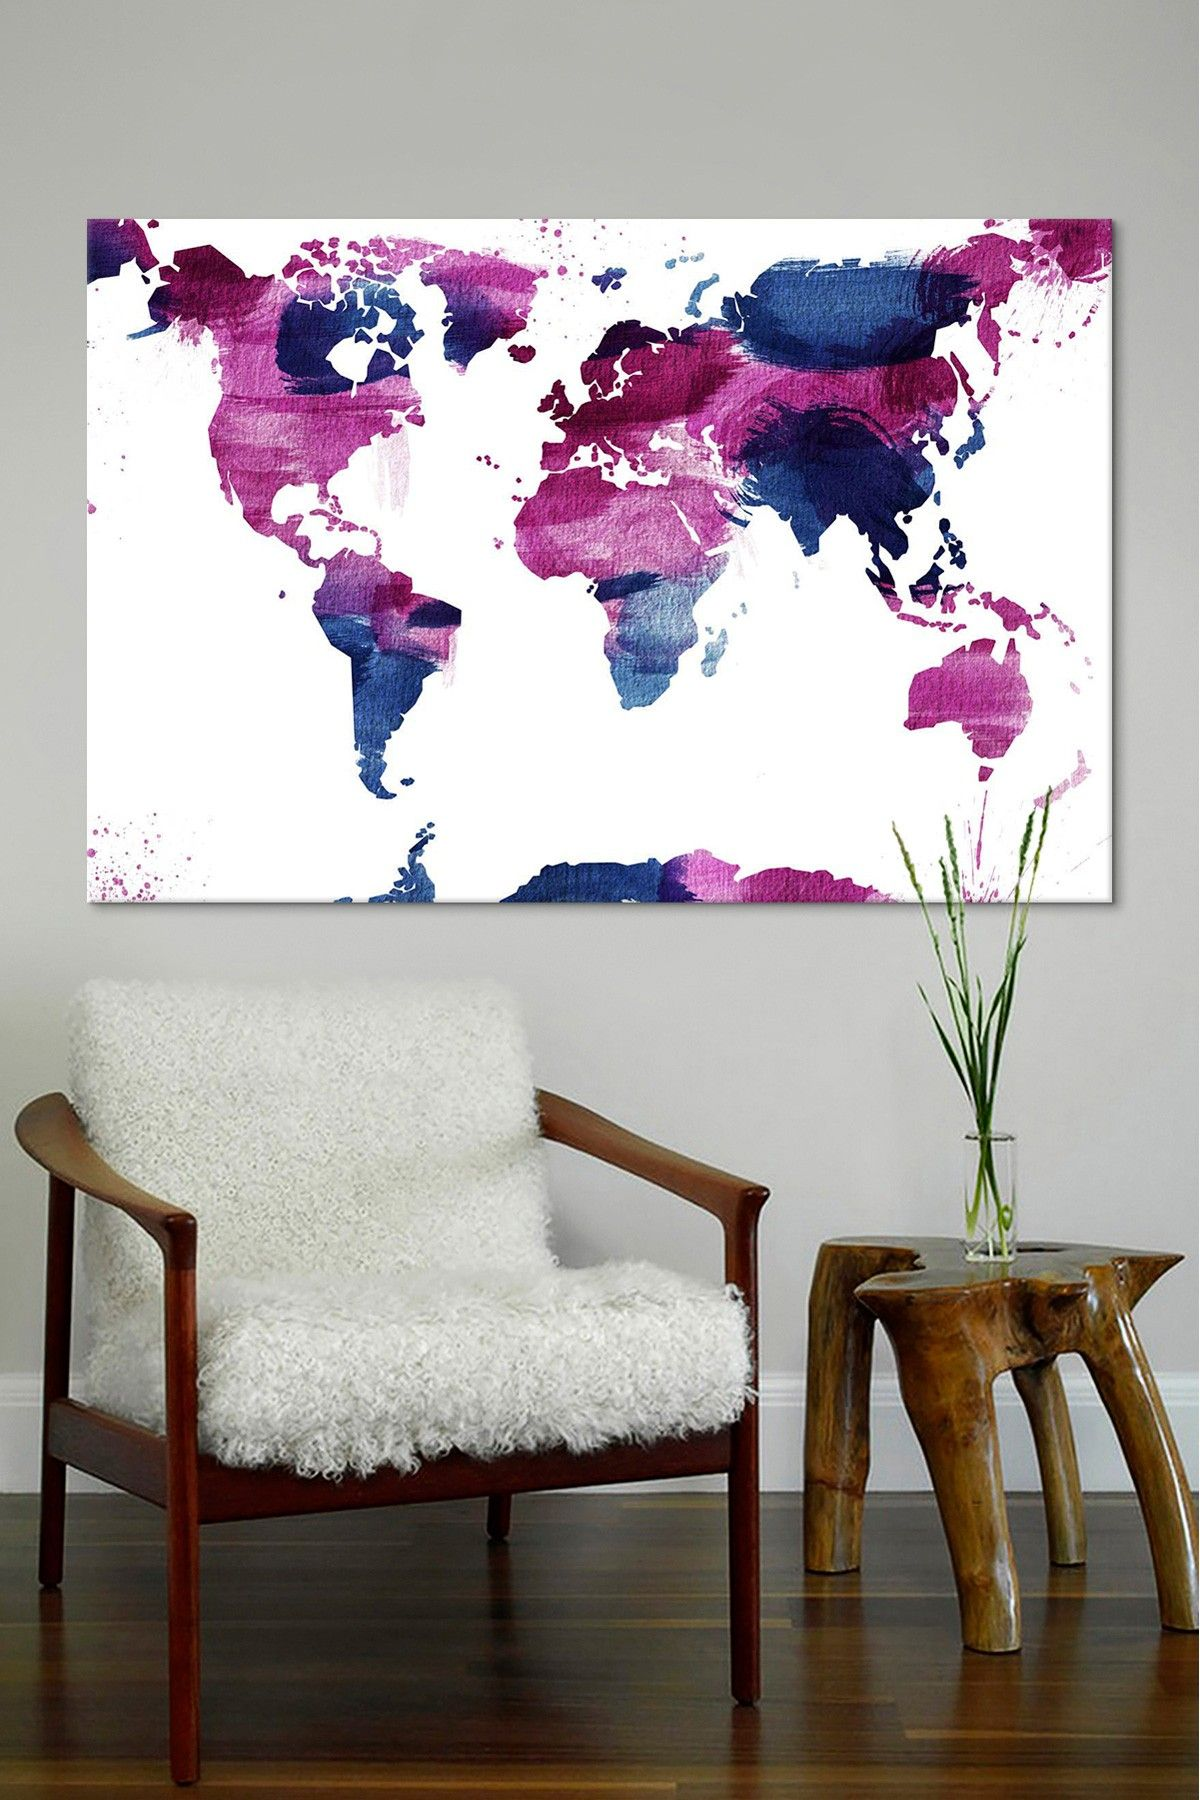 Watercolor world map canvas art a r t pinterest map watercolor world map canvas art could i diy for the dining room by tracing a projected map and filling in gumiabroncs Gallery